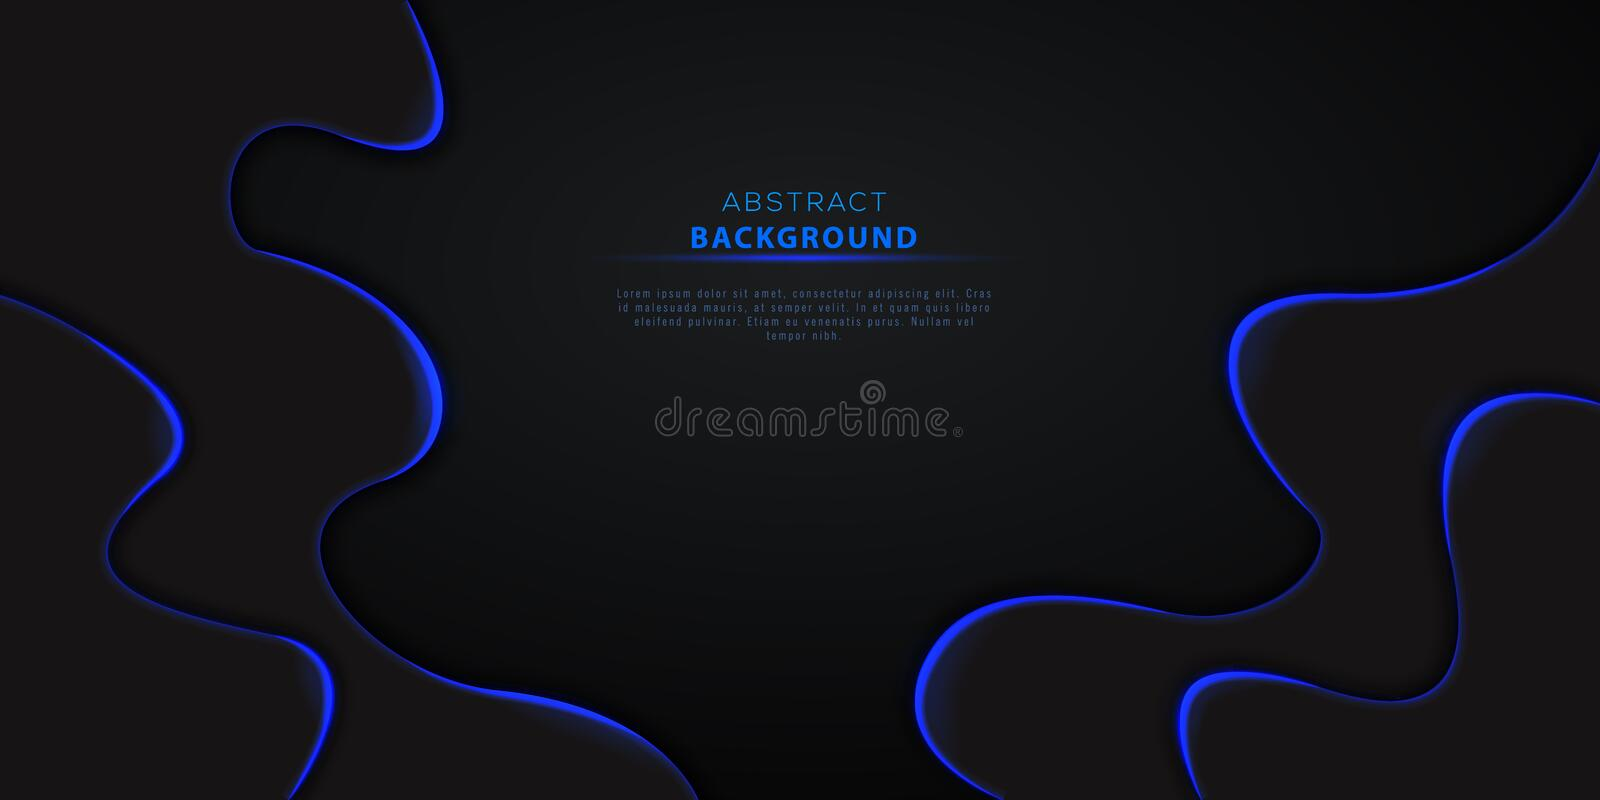 Abstract 3d black wavy background with blue neon lights and text. Futuristic technology design element for cyber monday vector illustration